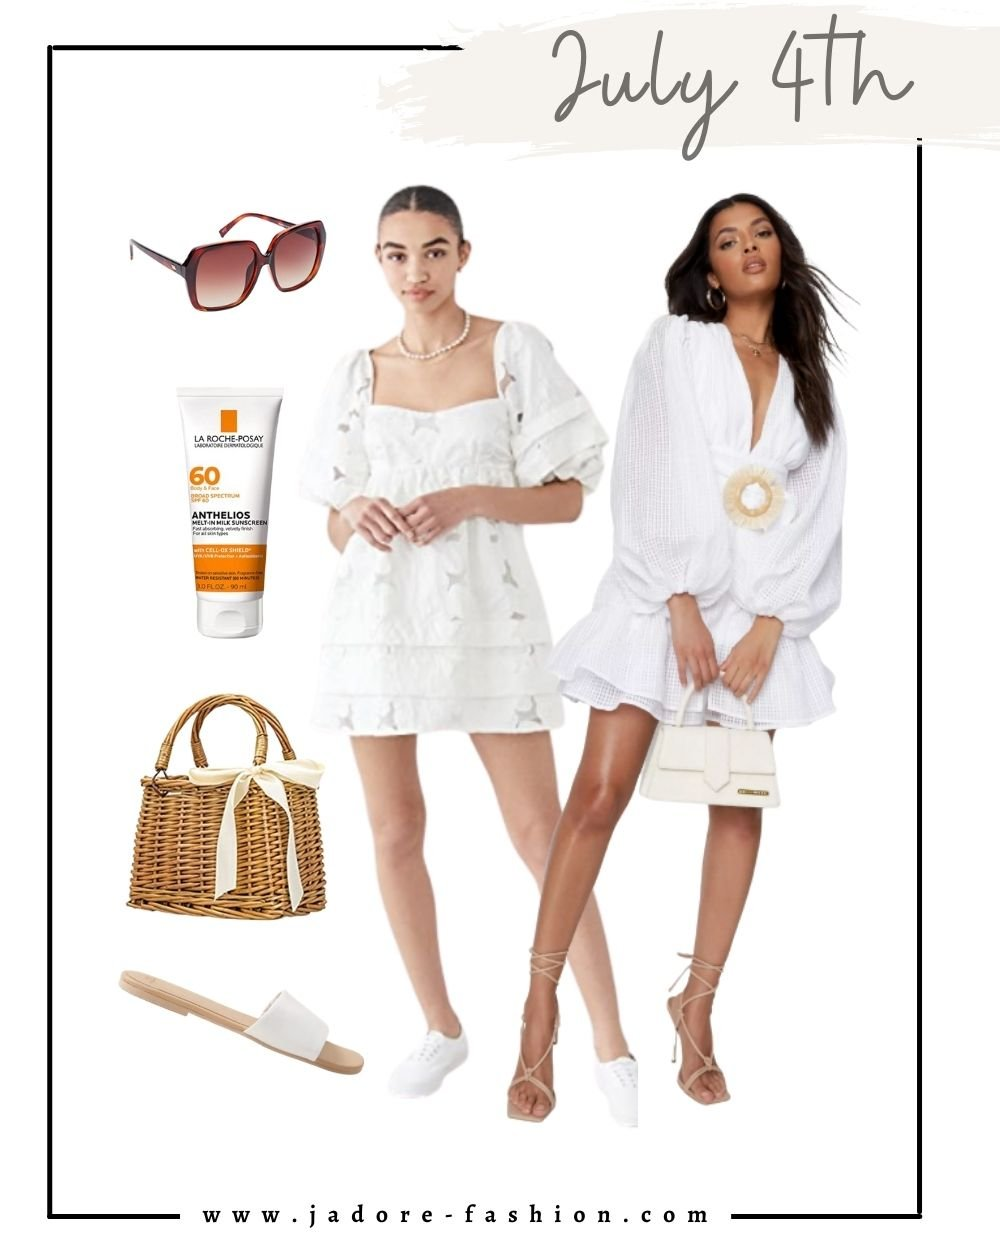 Stella-Adewunmi-of-jadore-fashion-shares-july-fourth-summer-outfit-ideas